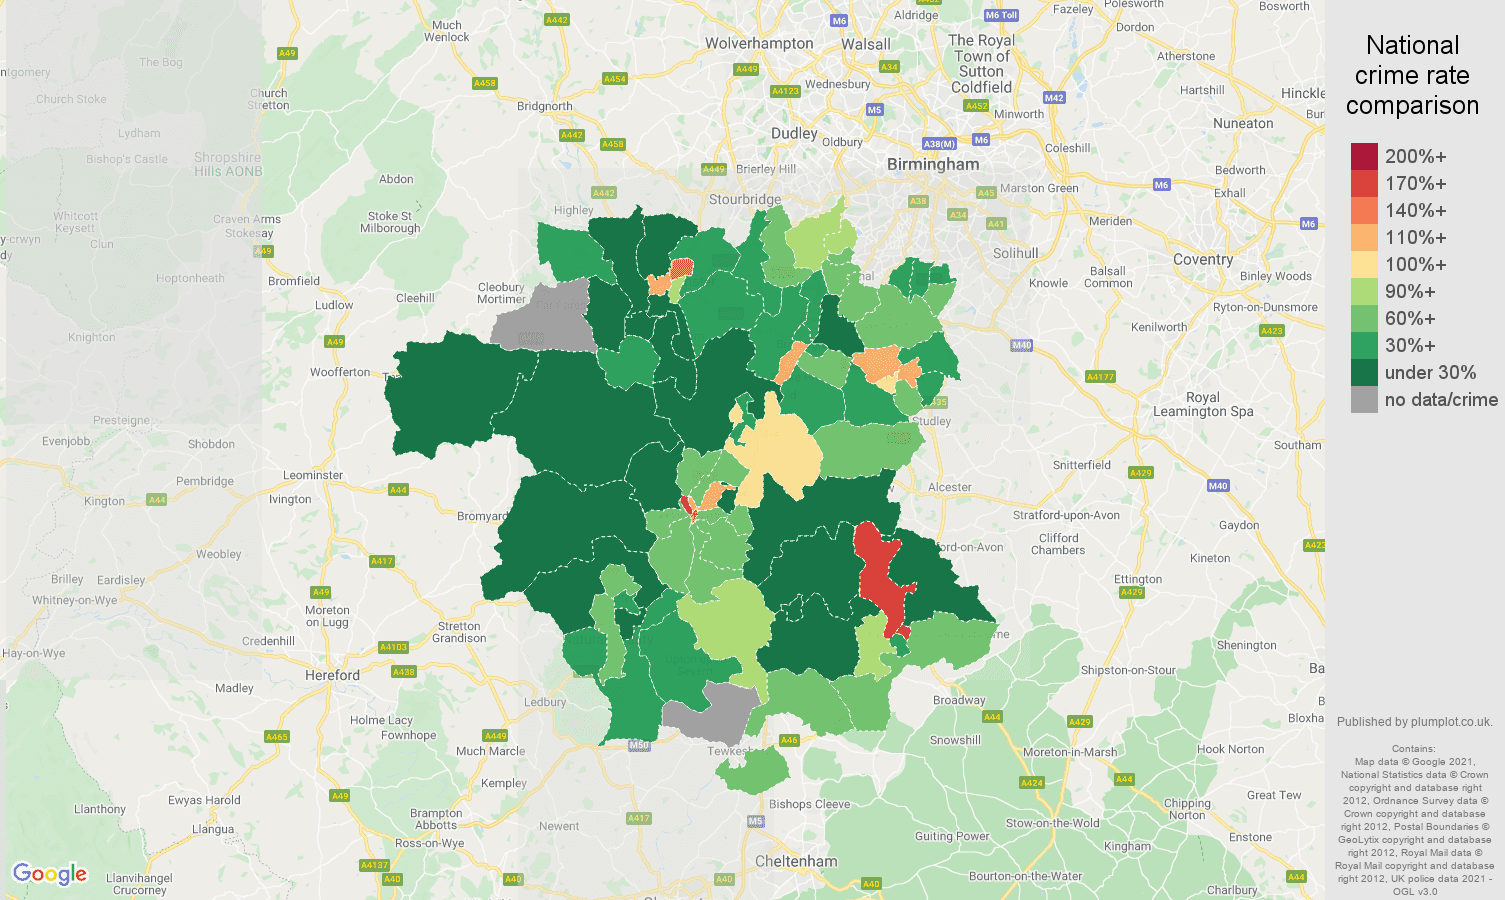 Worcestershire drugs crime rate comparison map